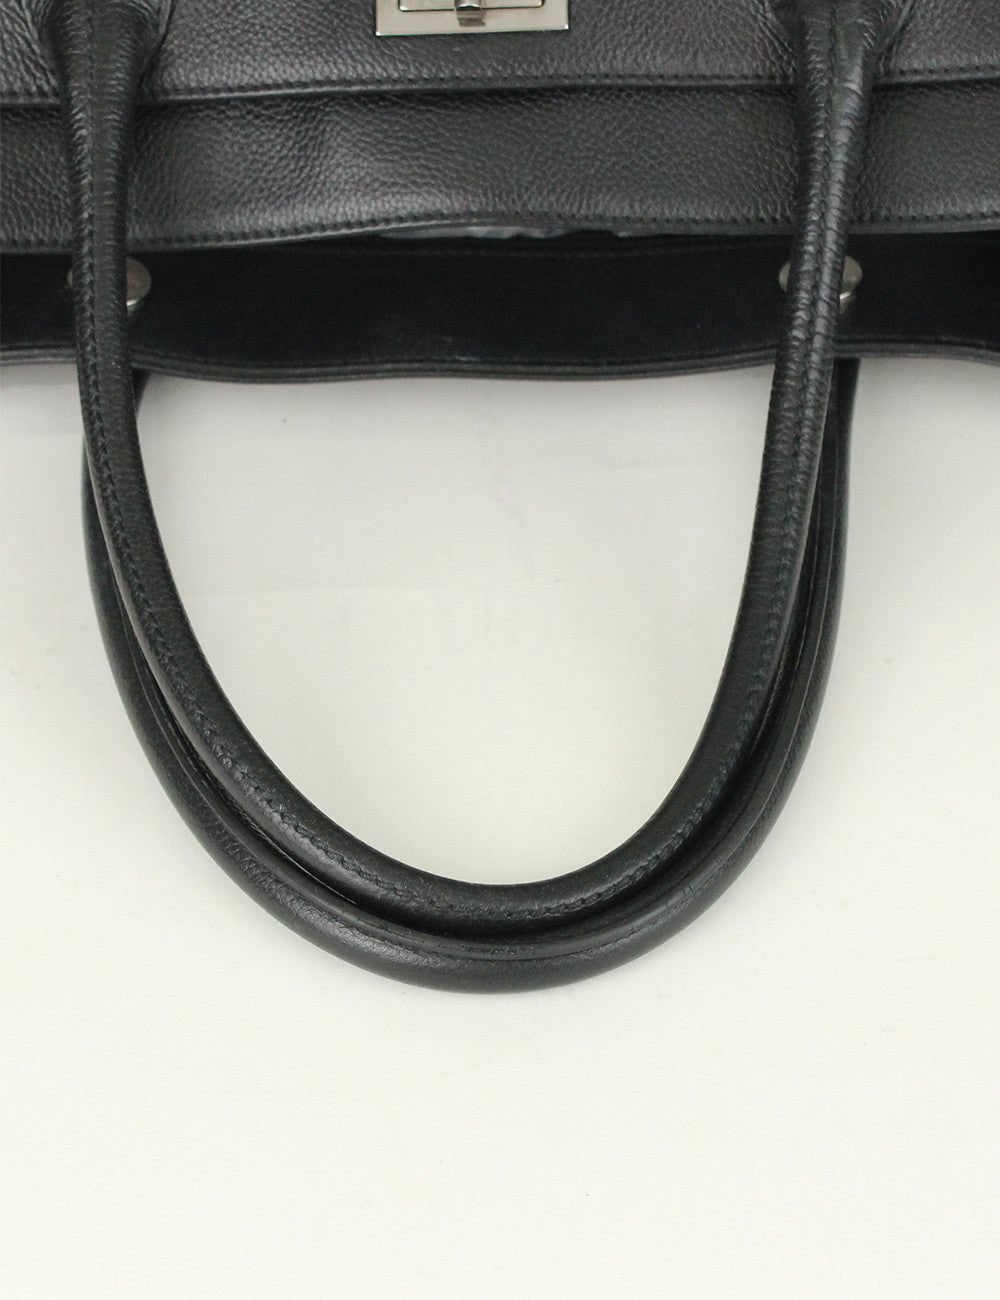 CHANEL <br> Reissue Tote Bag